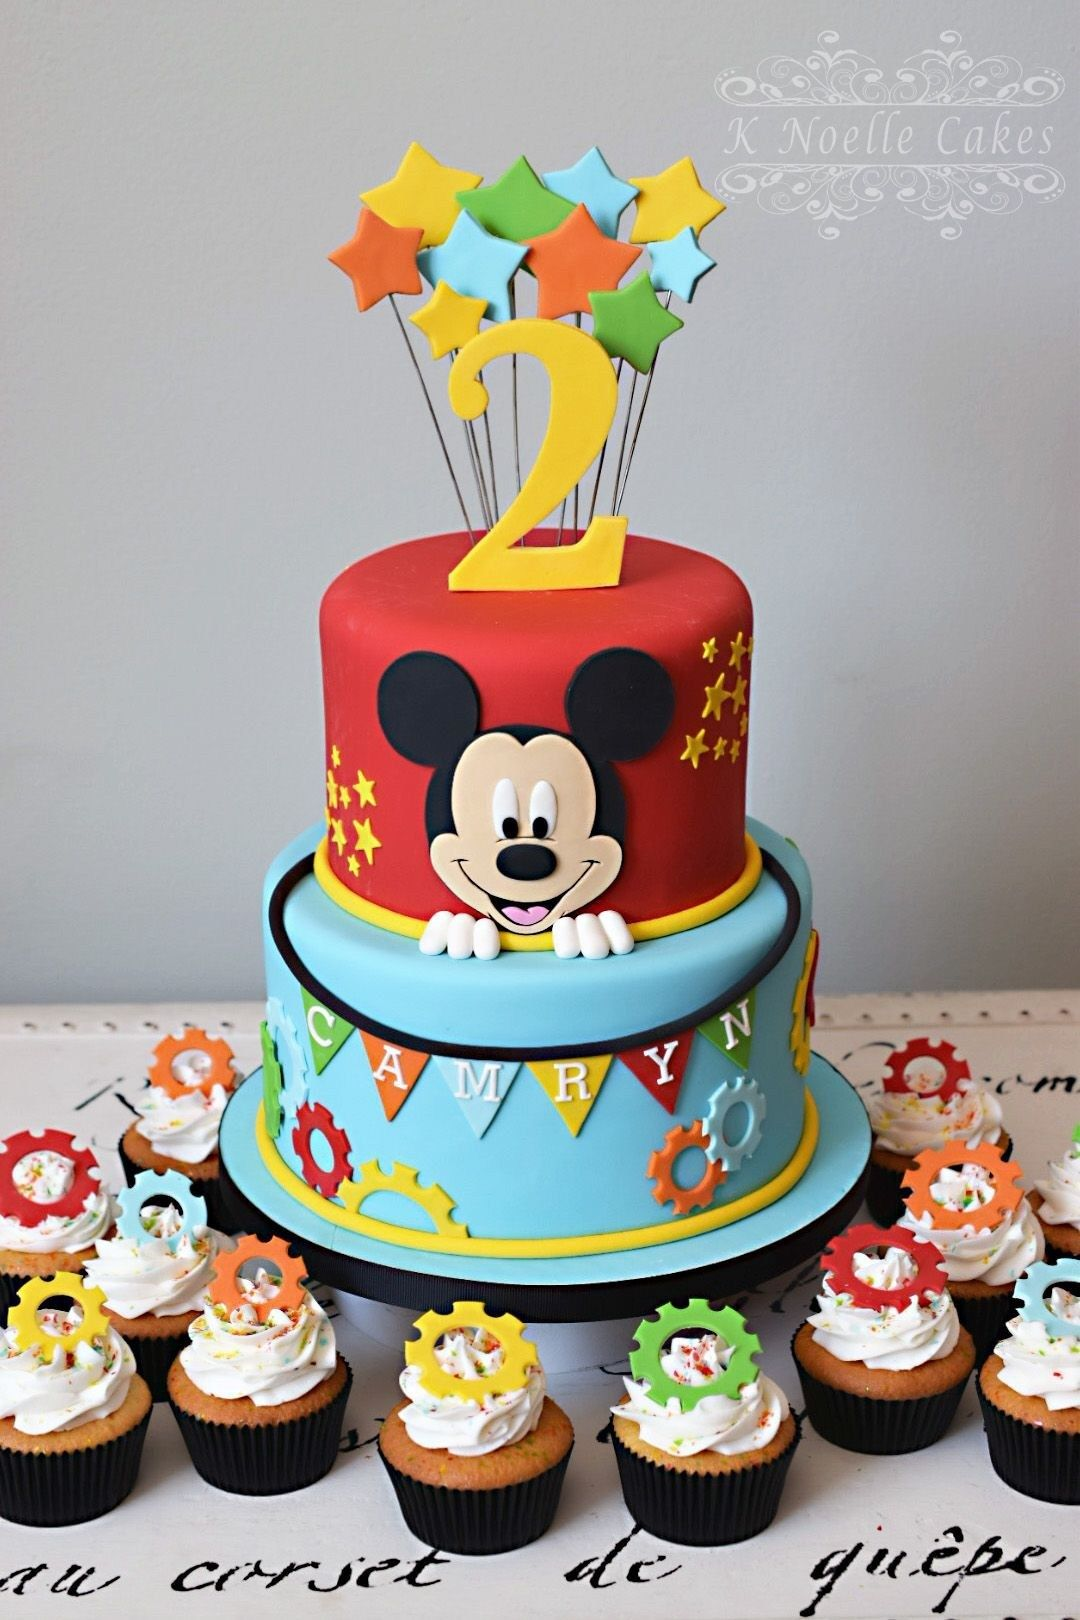 Groovy 25 Inspired Picture Of Mickey Birthday Cake Mickey Mouse Funny Birthday Cards Online Alyptdamsfinfo